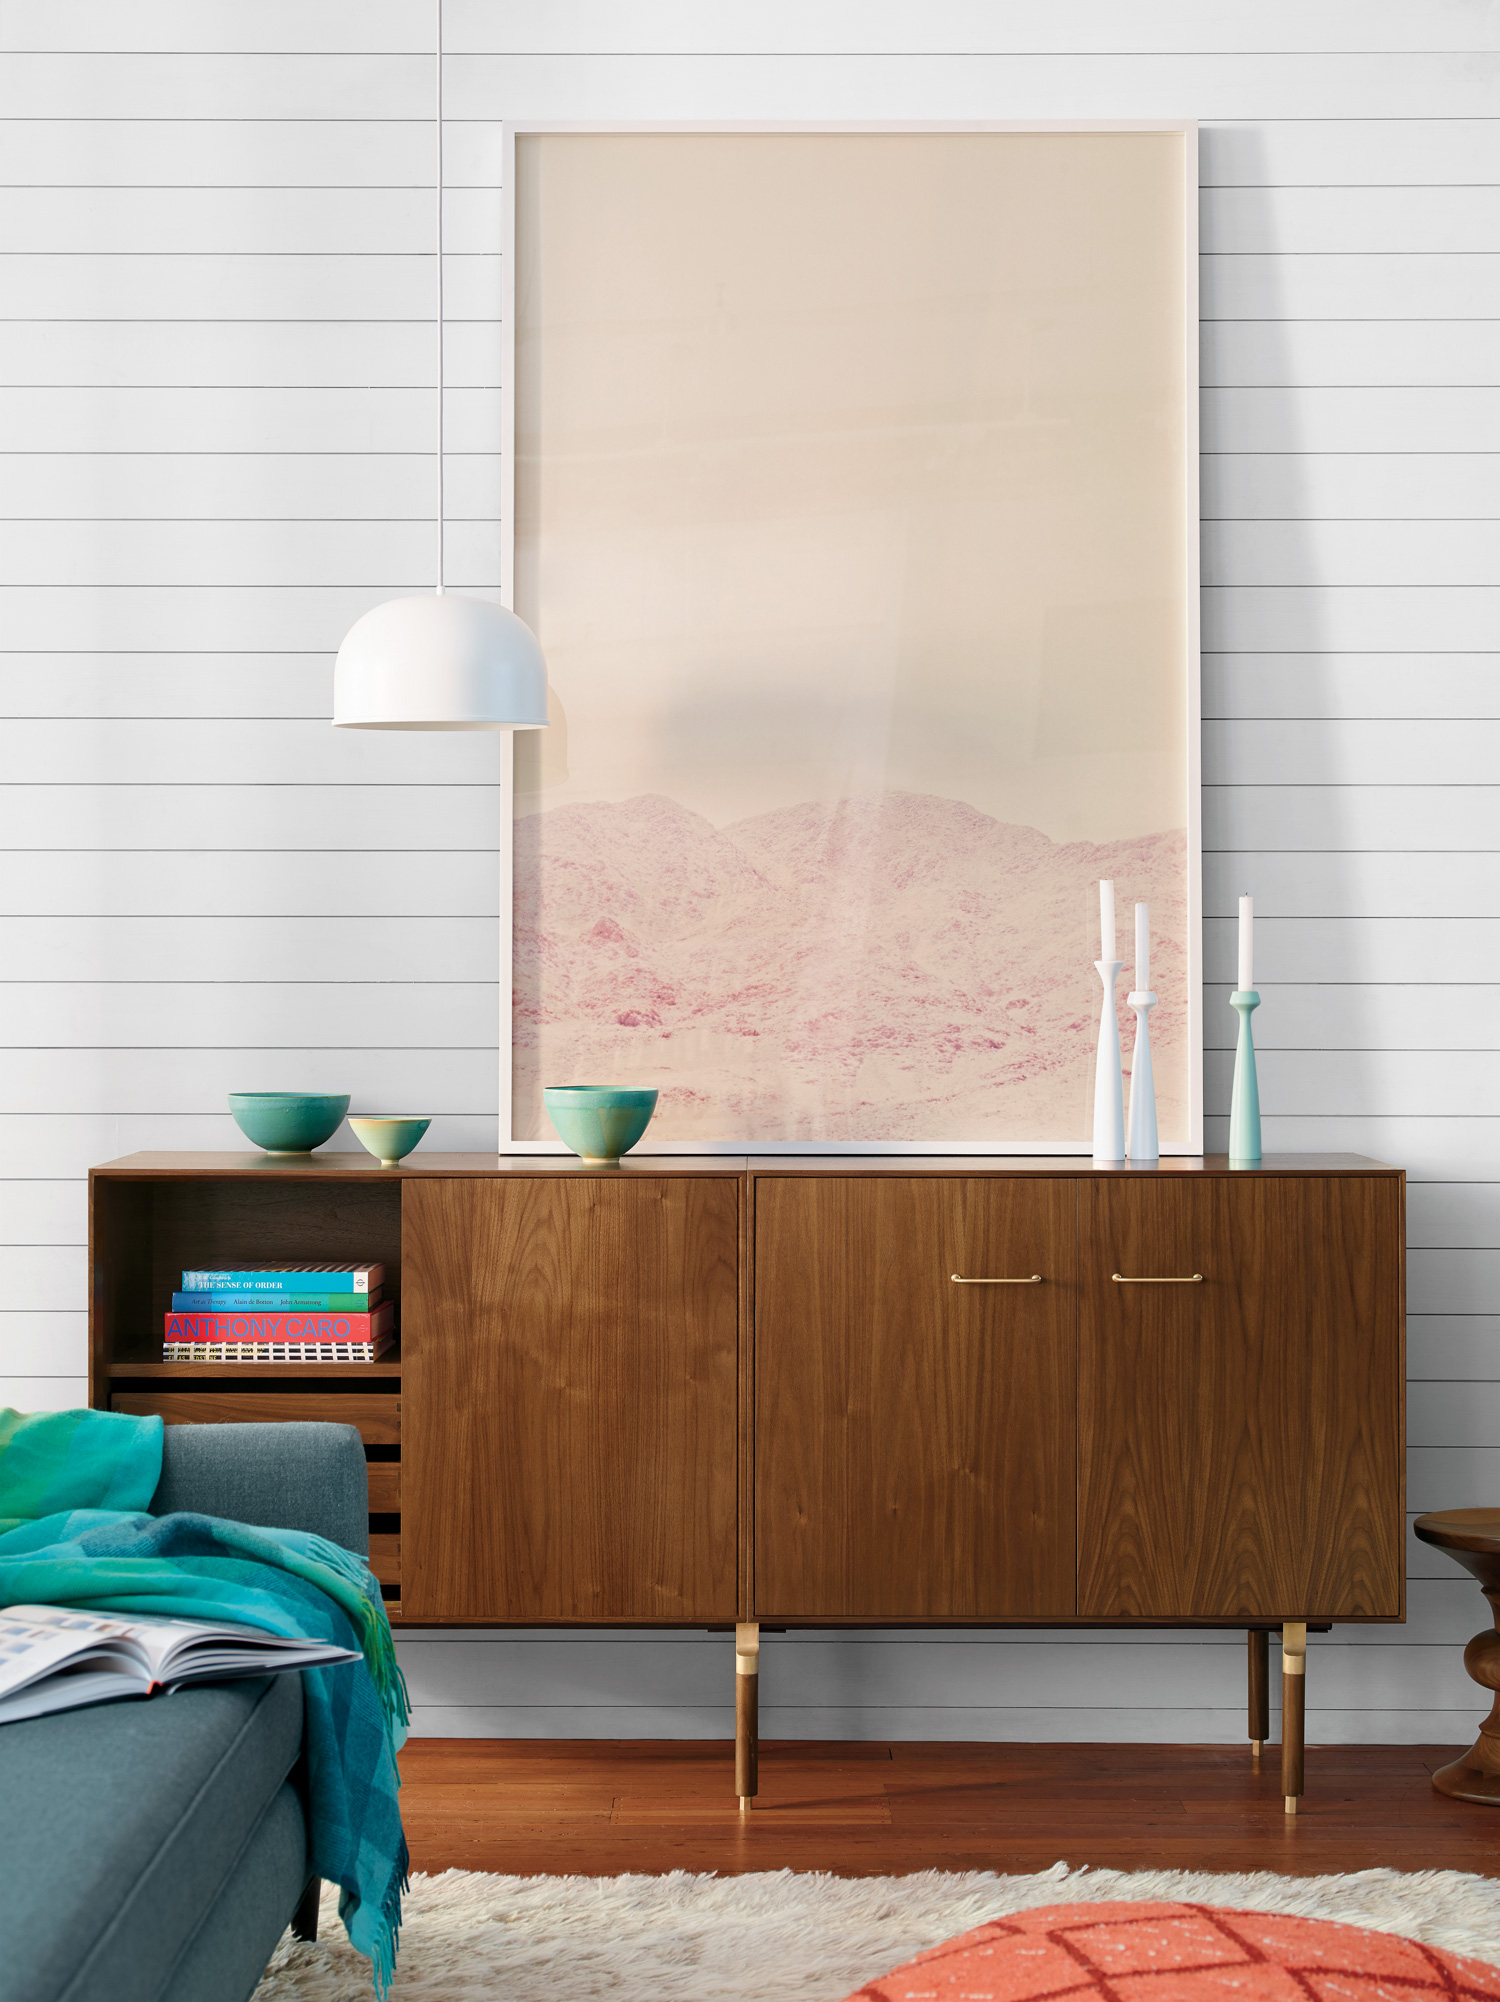 Ven Sliding Door Credenza by Jens Risom & Chris Hardy for Design Within Reach | Photo courtesy Design Within Reach